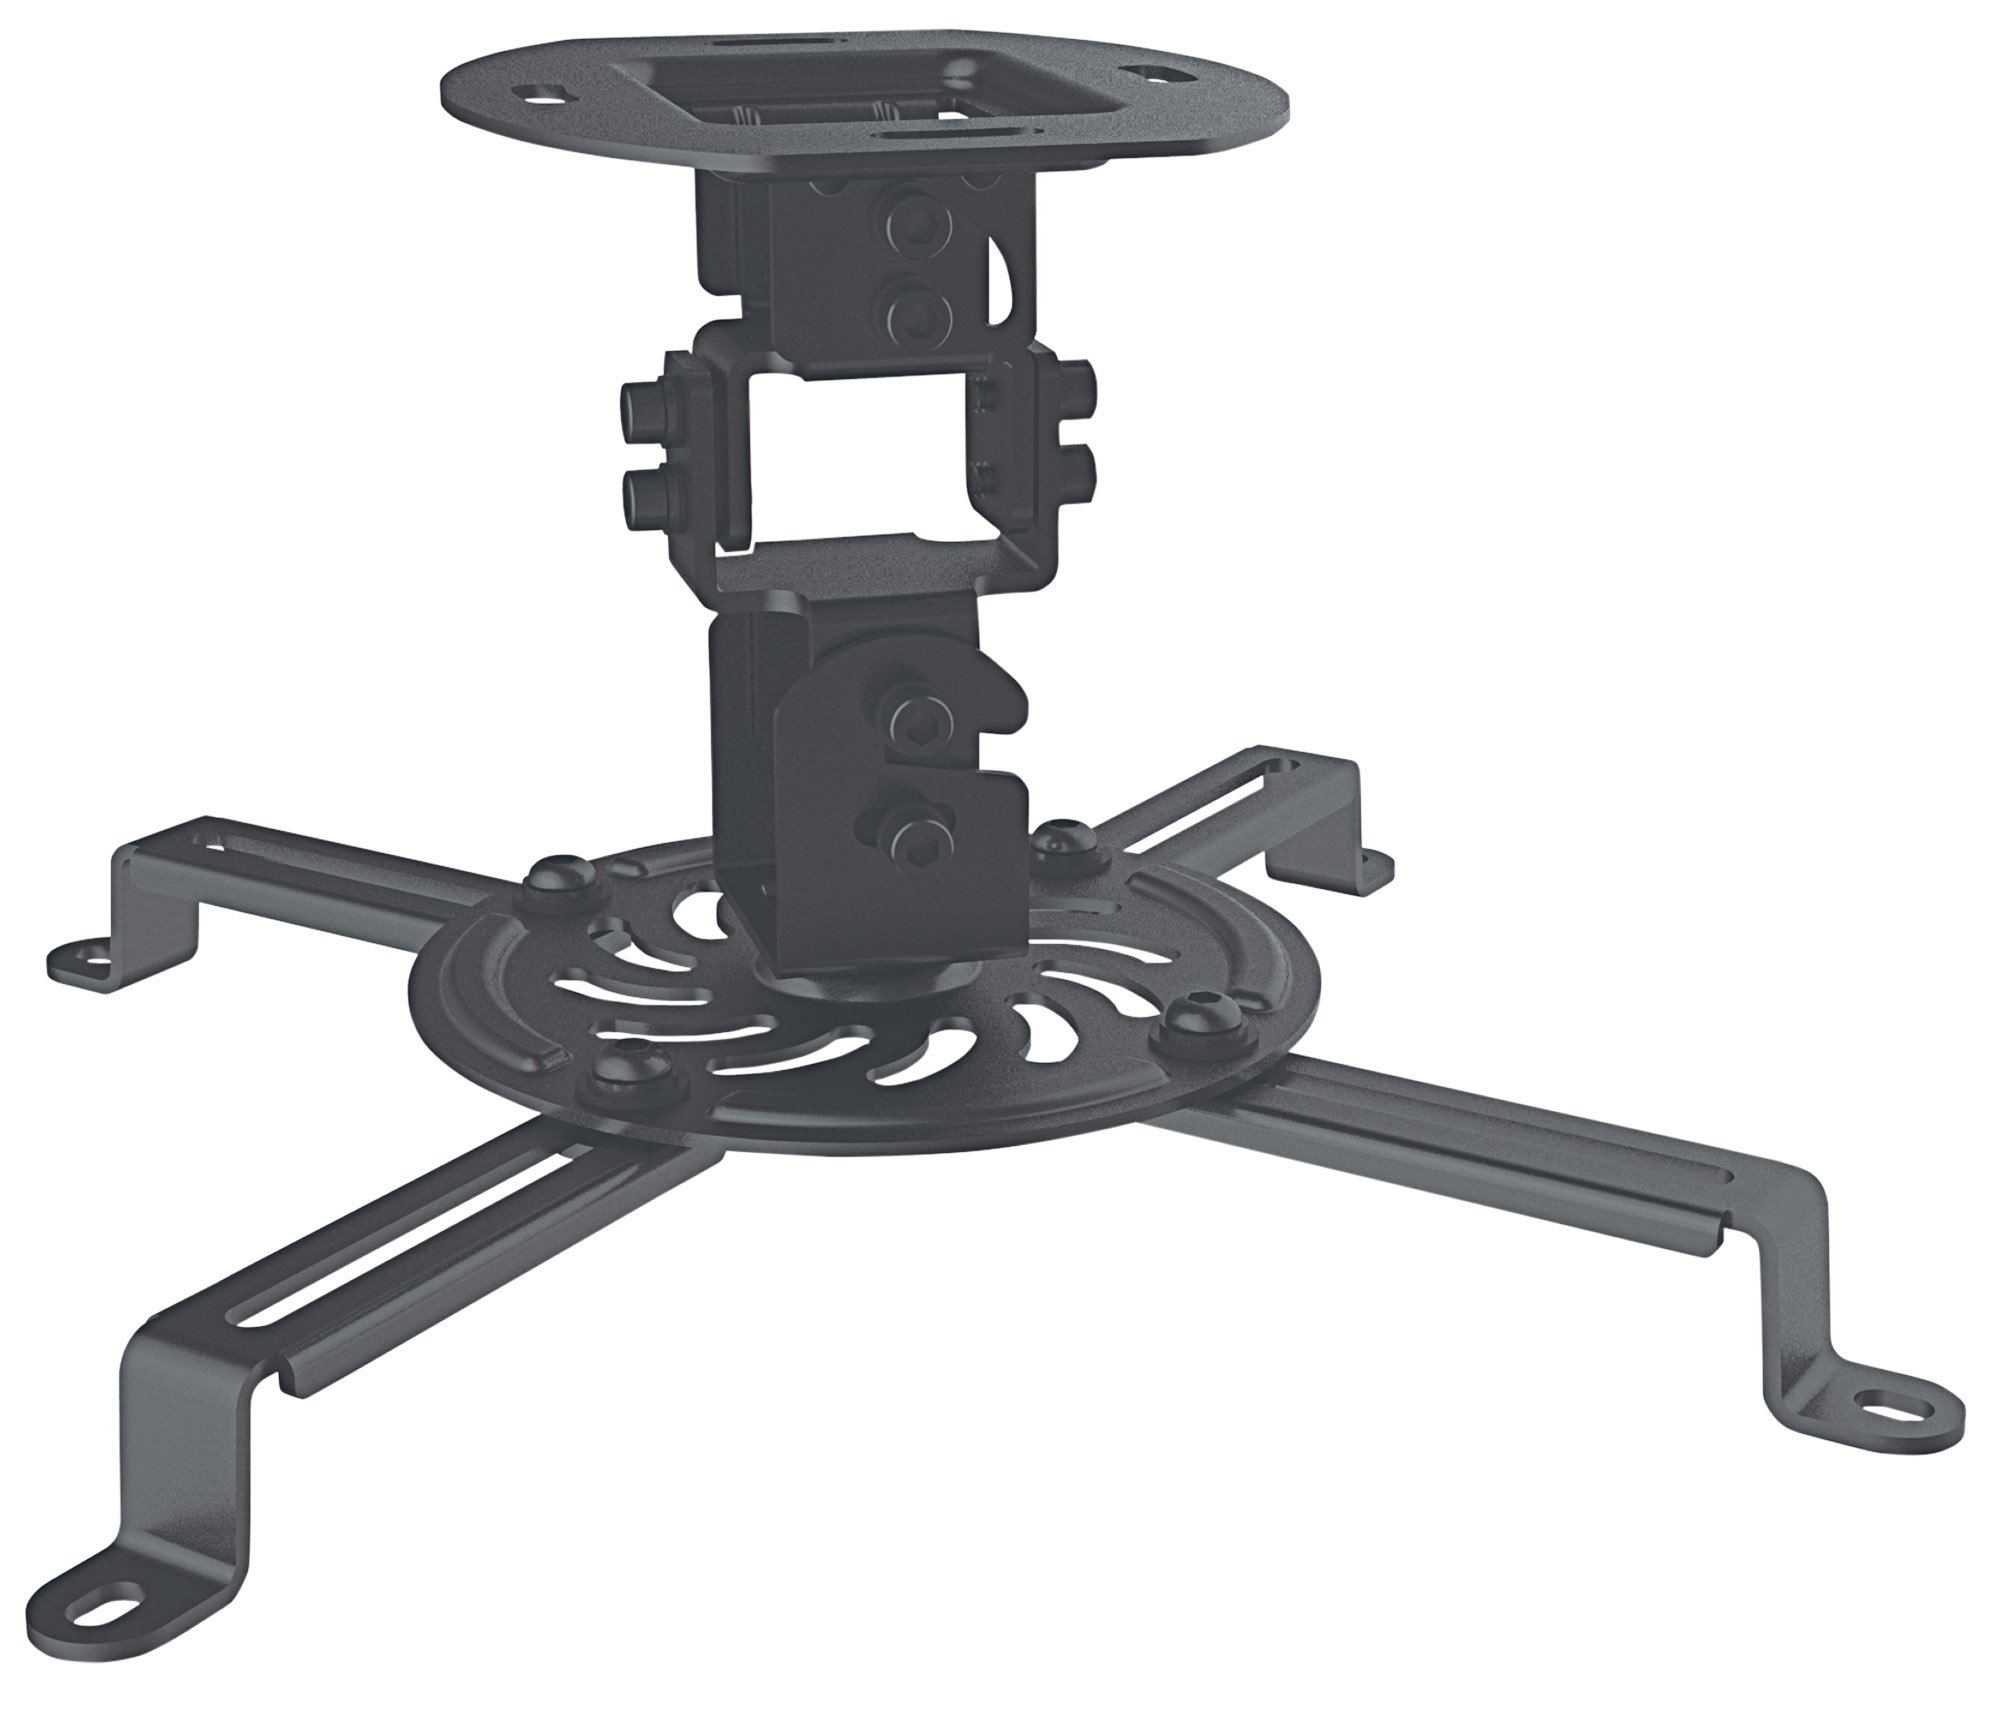 Manhattan 461184 Ceiling Mount for Projector